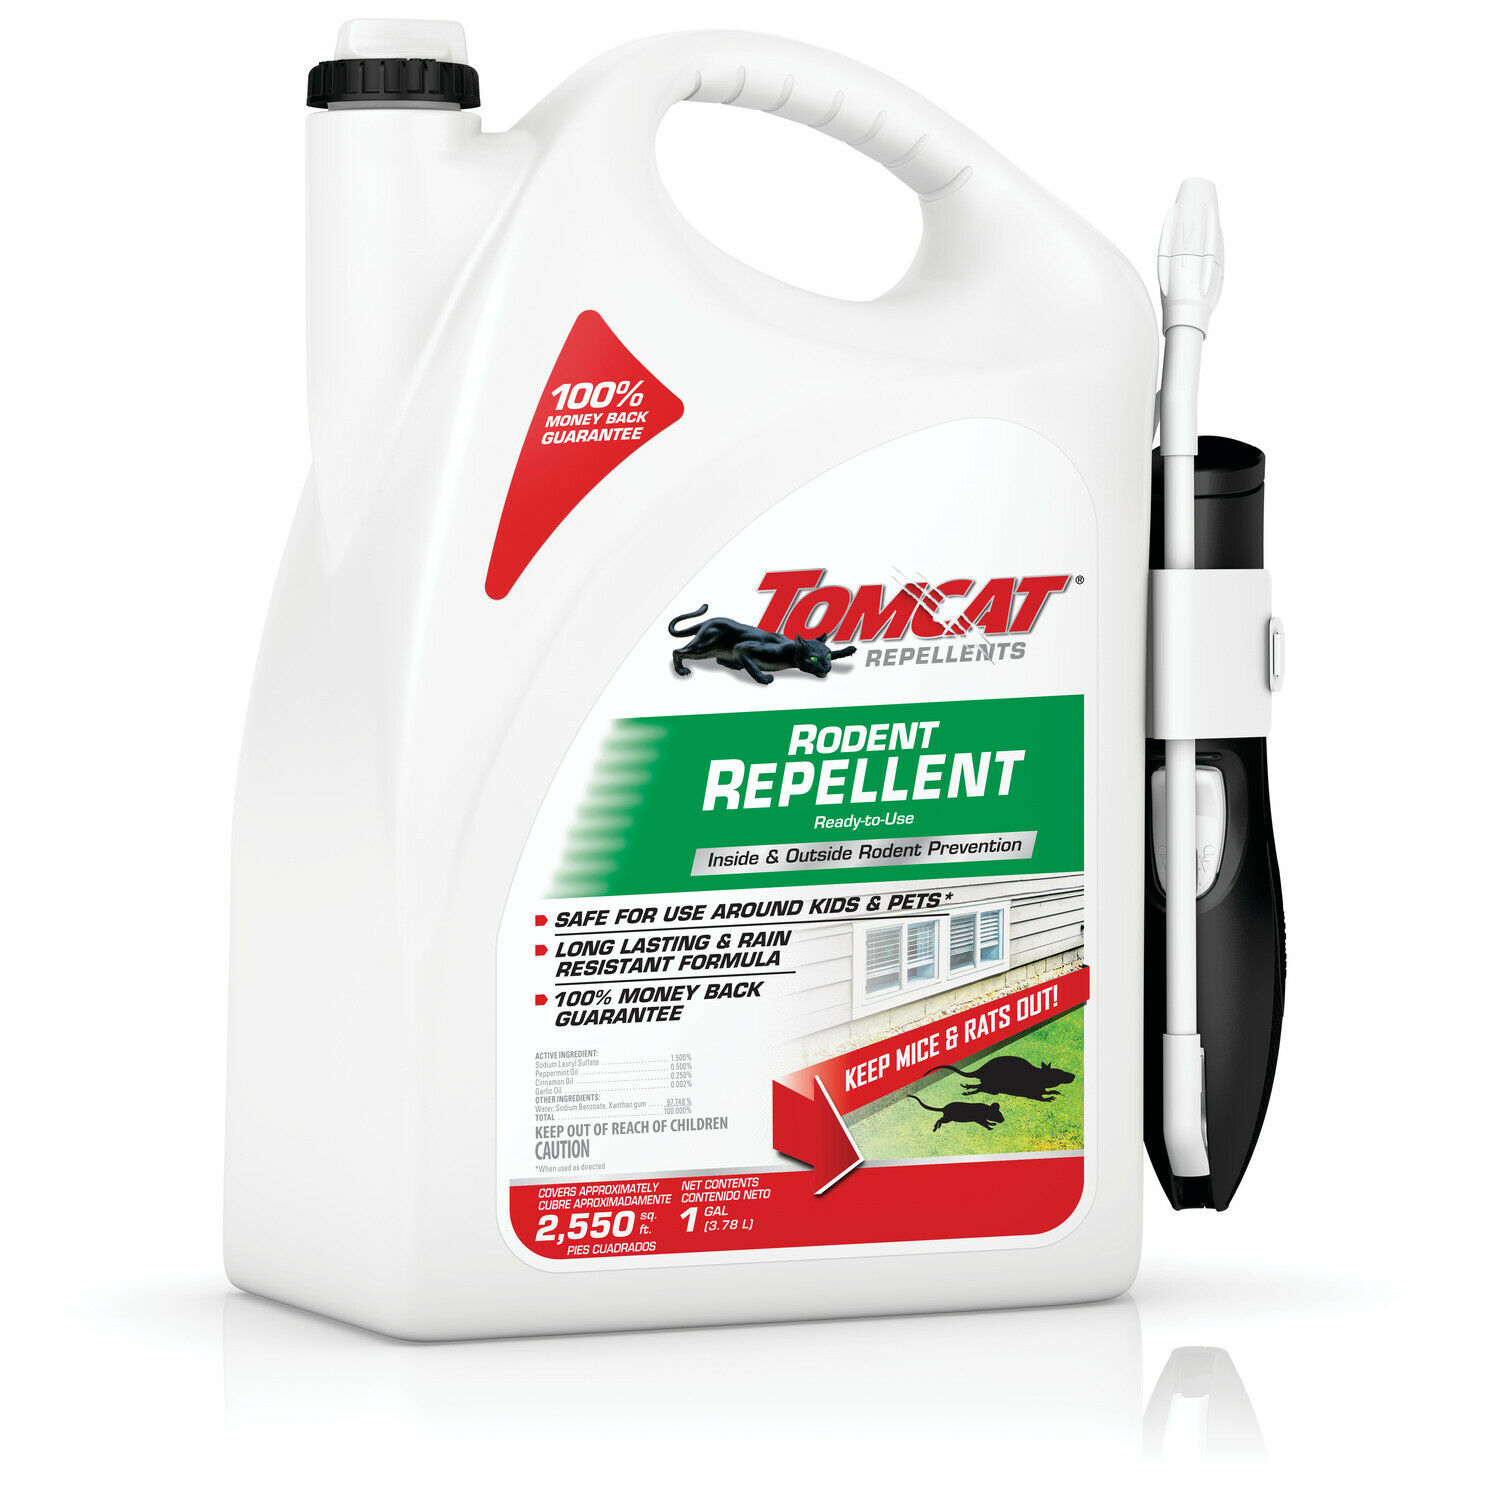 Tomcat Repellents Rodent Repellent Ready-to-Use with Comfort